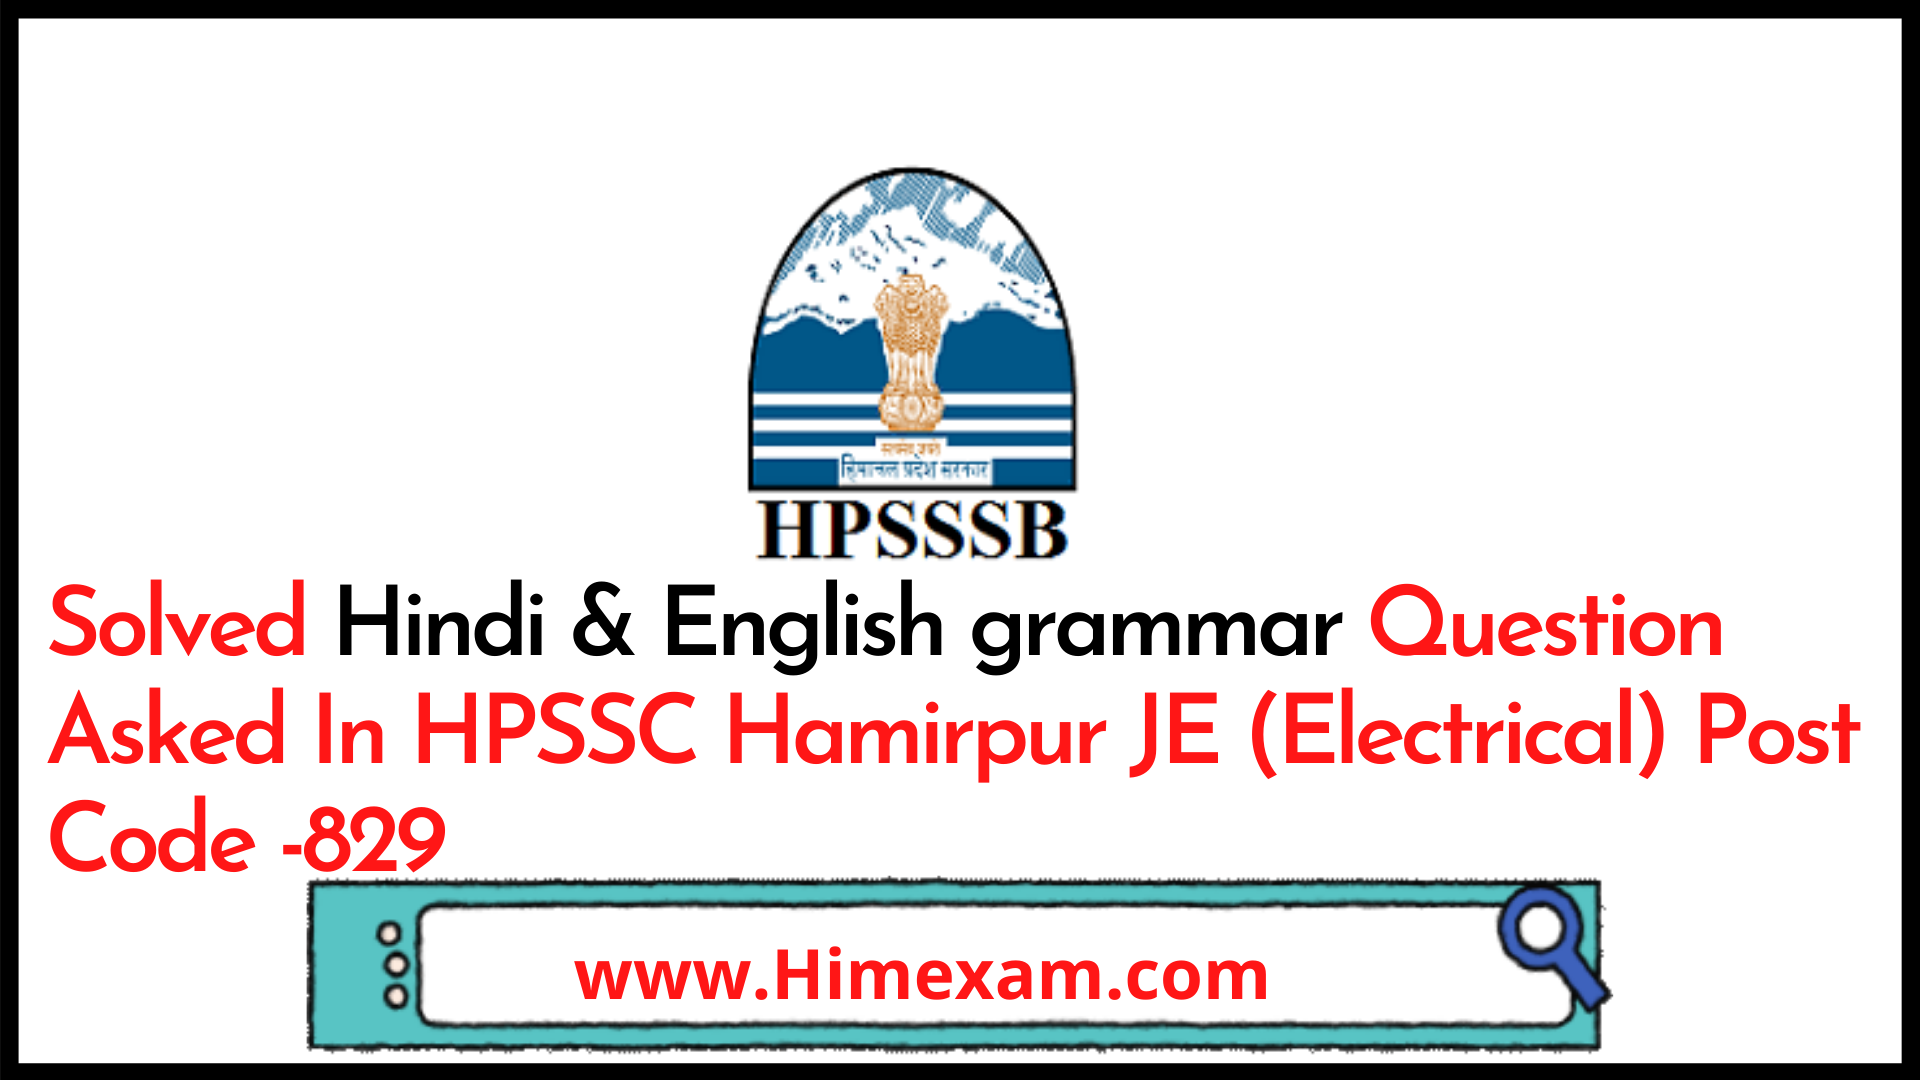 Solved Hindi & English grammar Question Asked In HPSSC Hamirpur JE (Electrical) Post Code -829